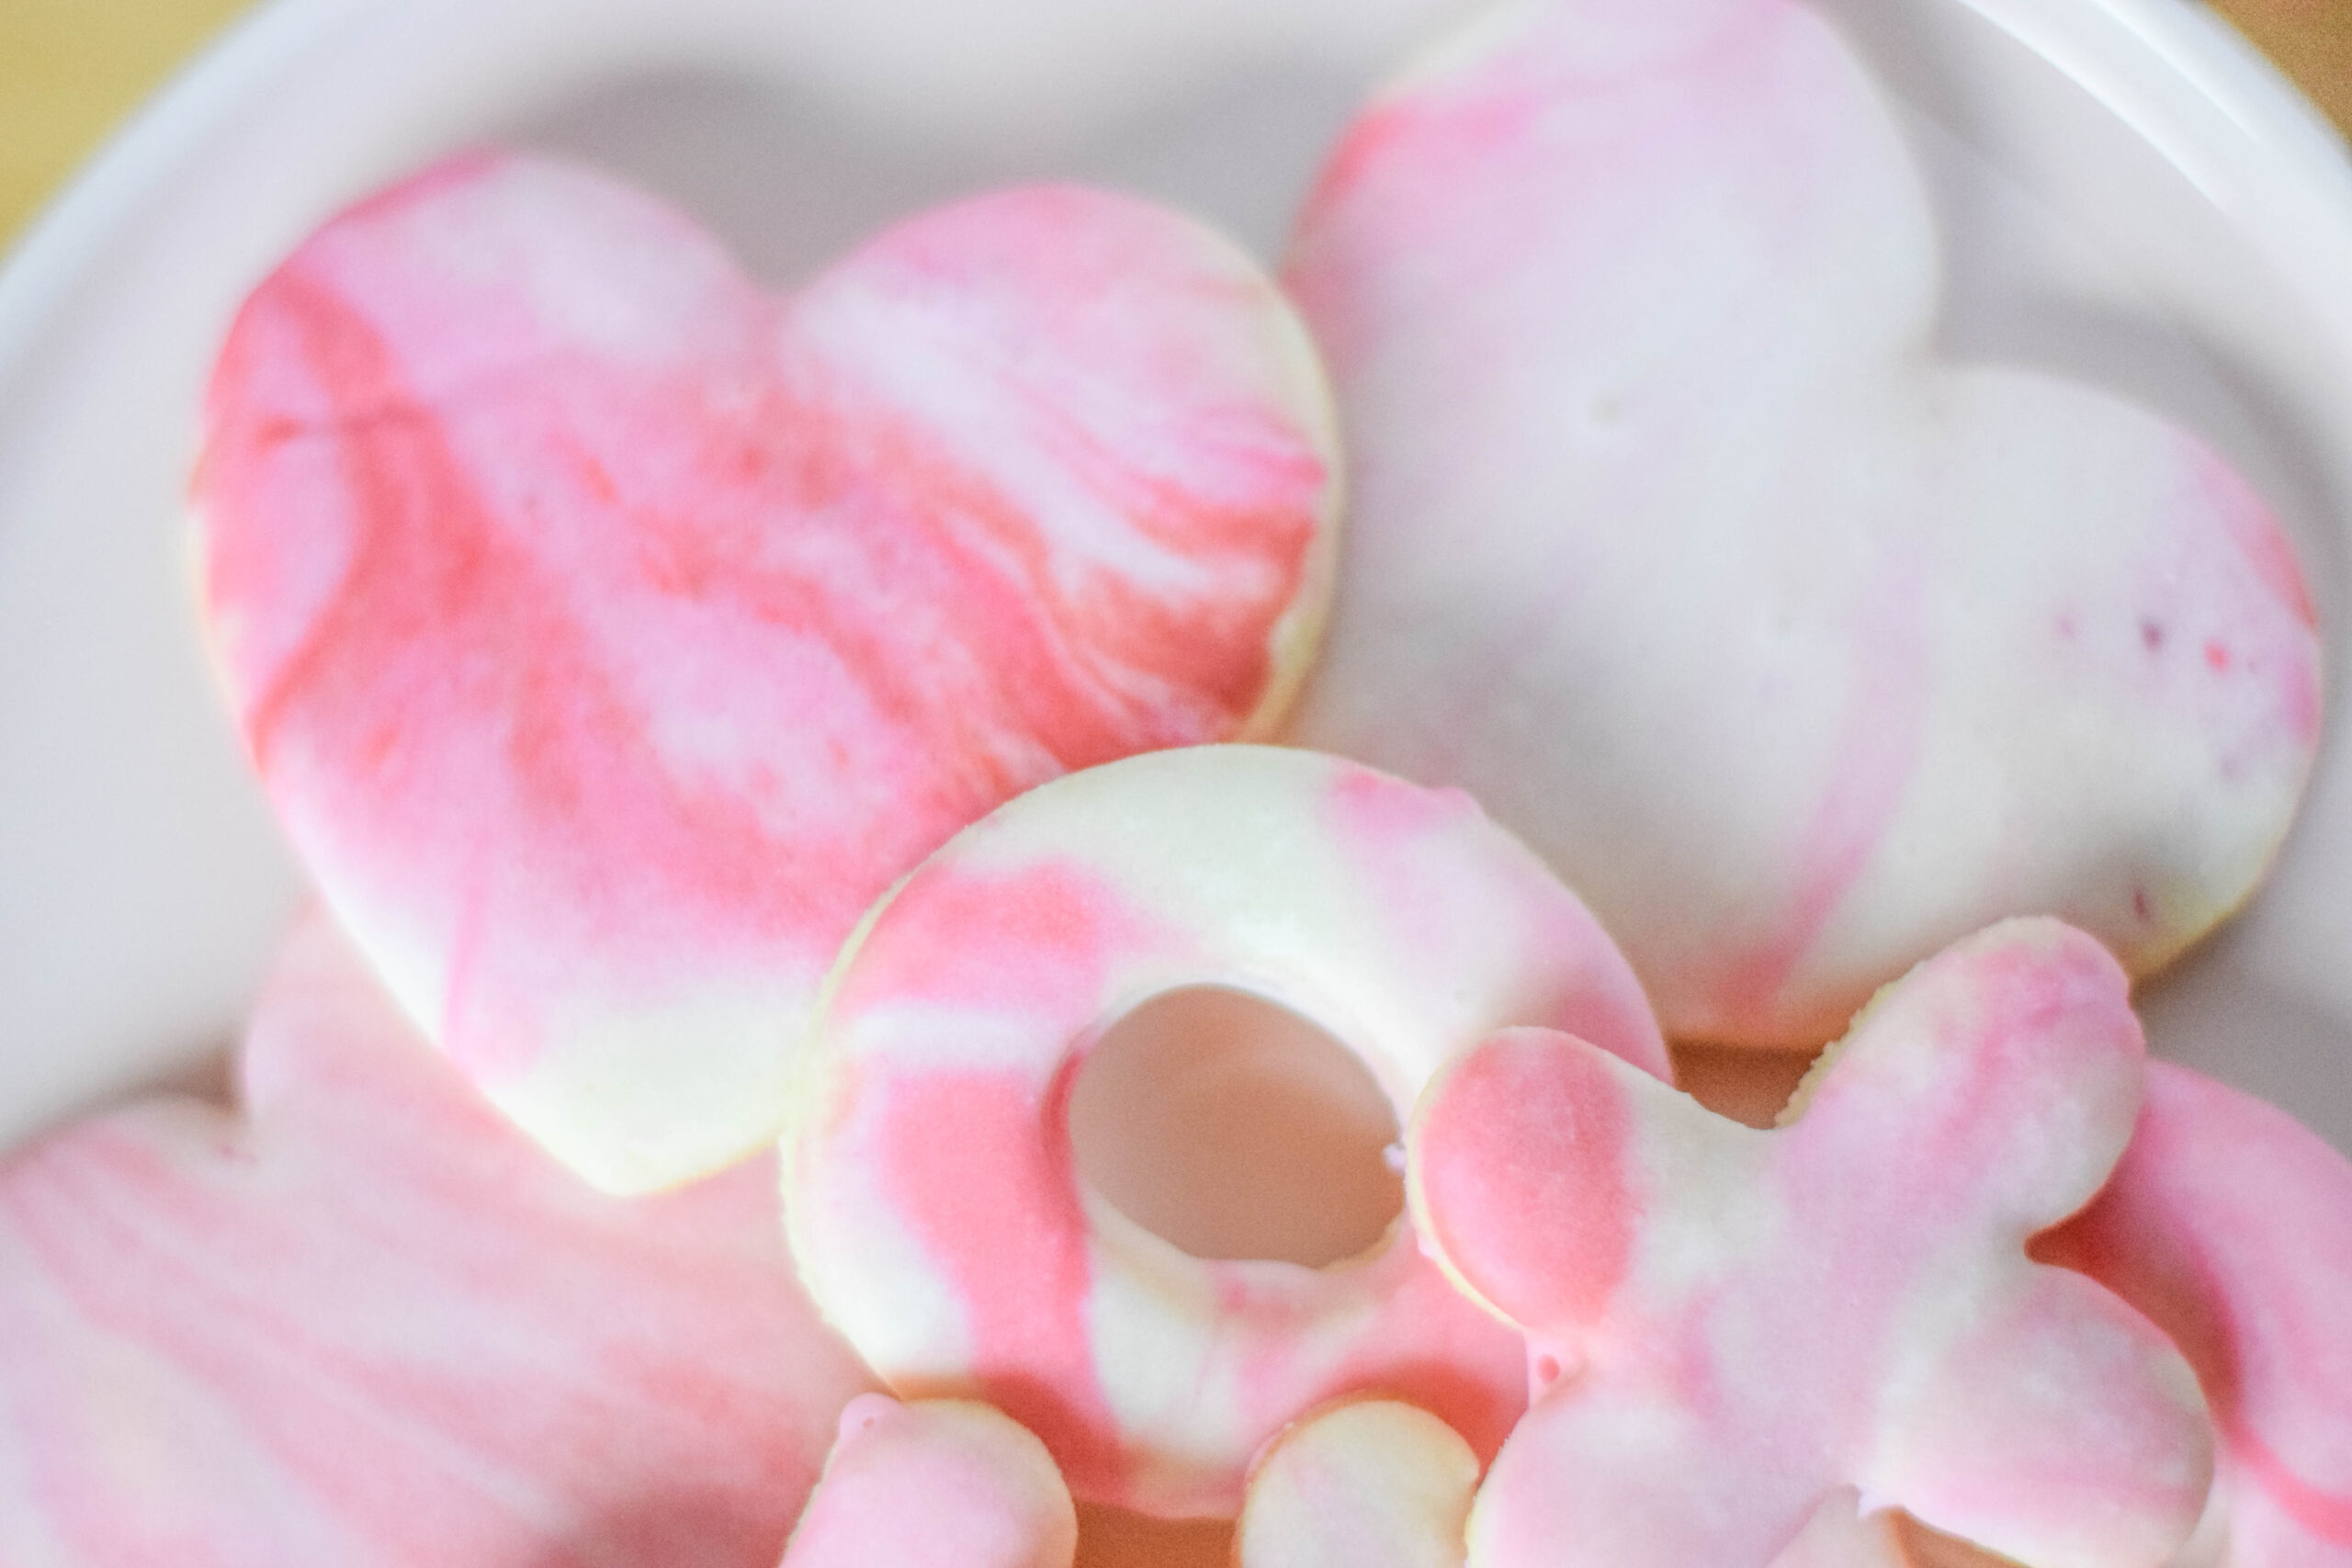 XOXO and heart-shaped sugar cookies with red, pink, and white marble icing